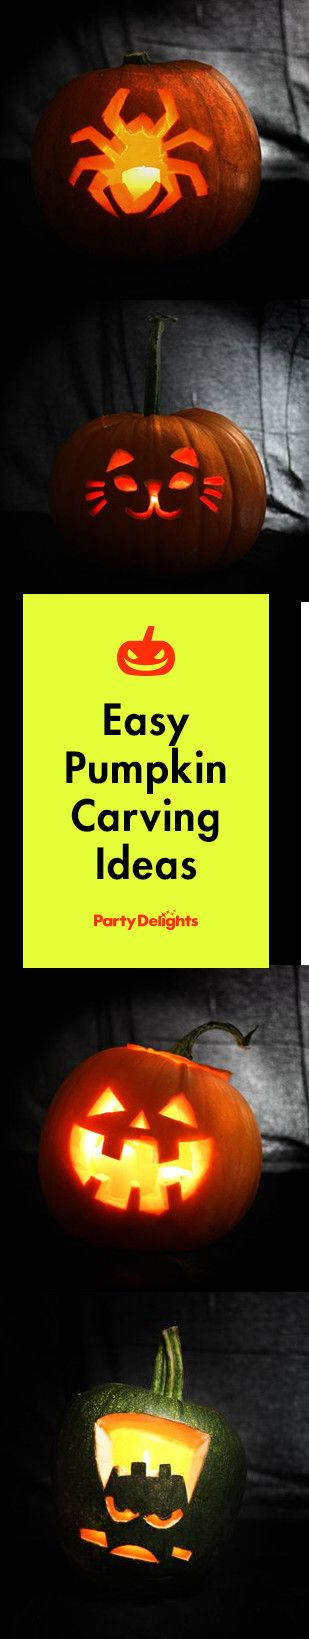 Check out our easy pumpkin carving ideas for Halloween including free pumpkin stencils in a range of spooky designs.